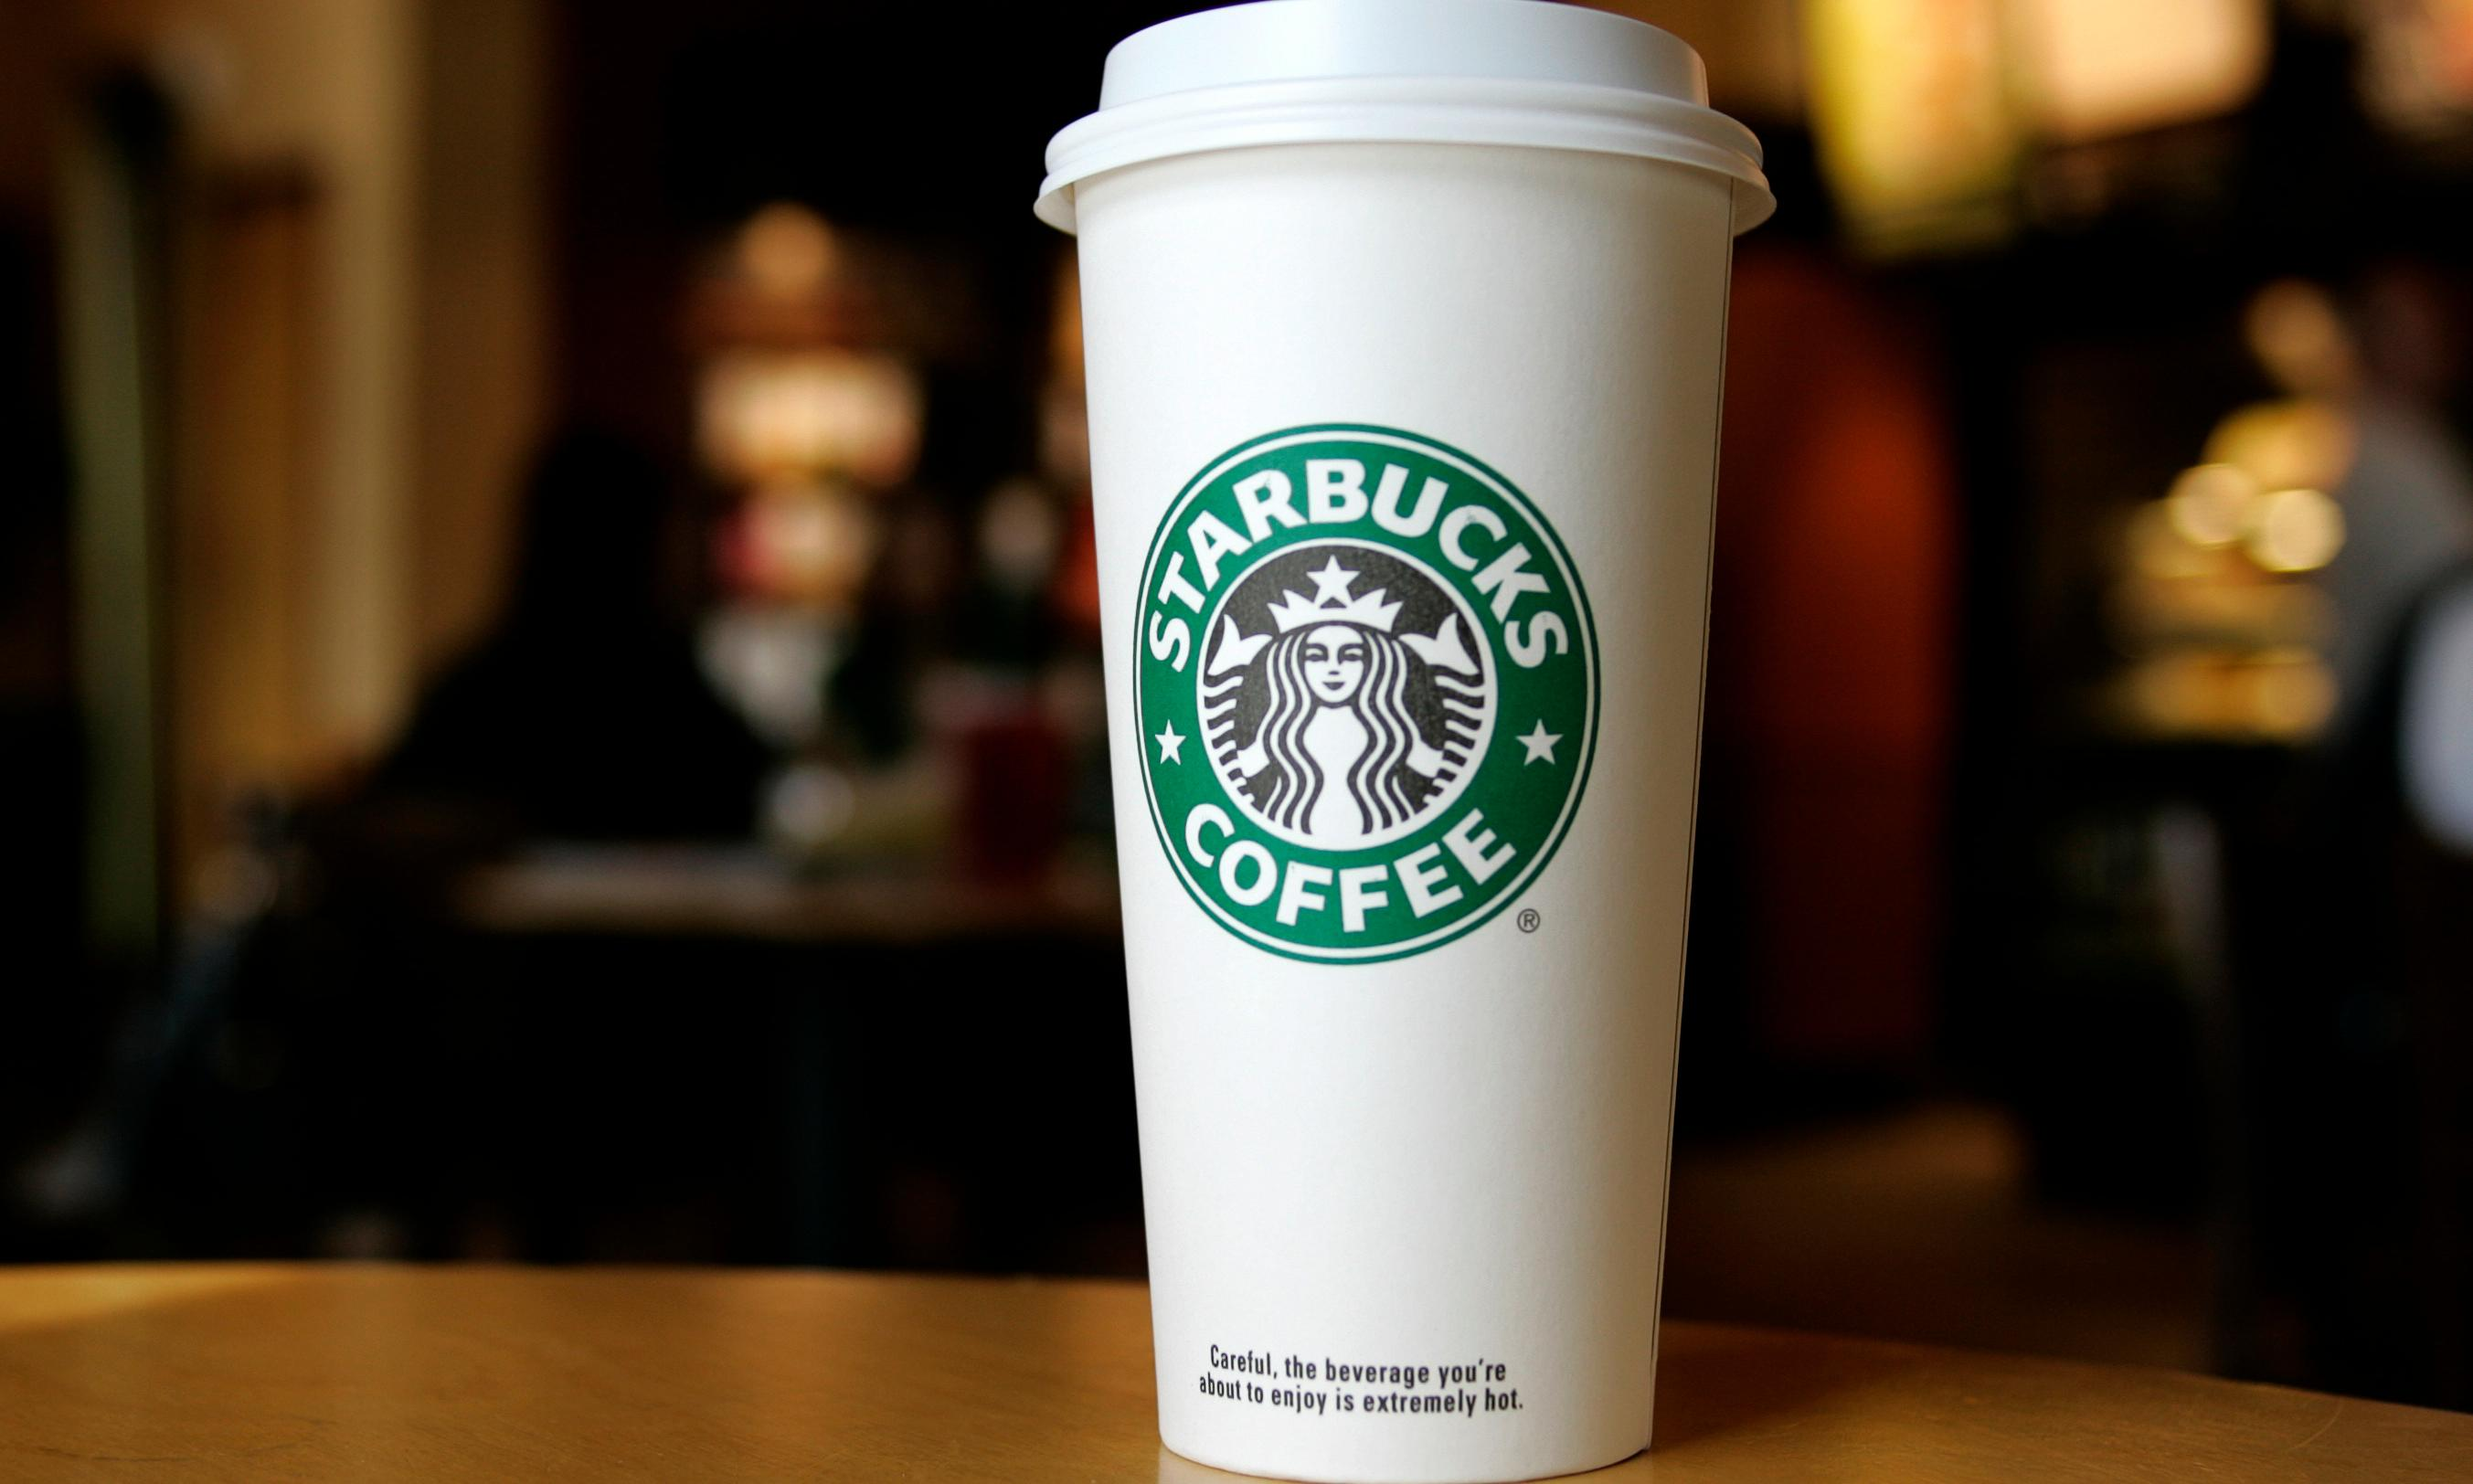 Starbucks worker says he was fired for union organizing and 'to create fear'